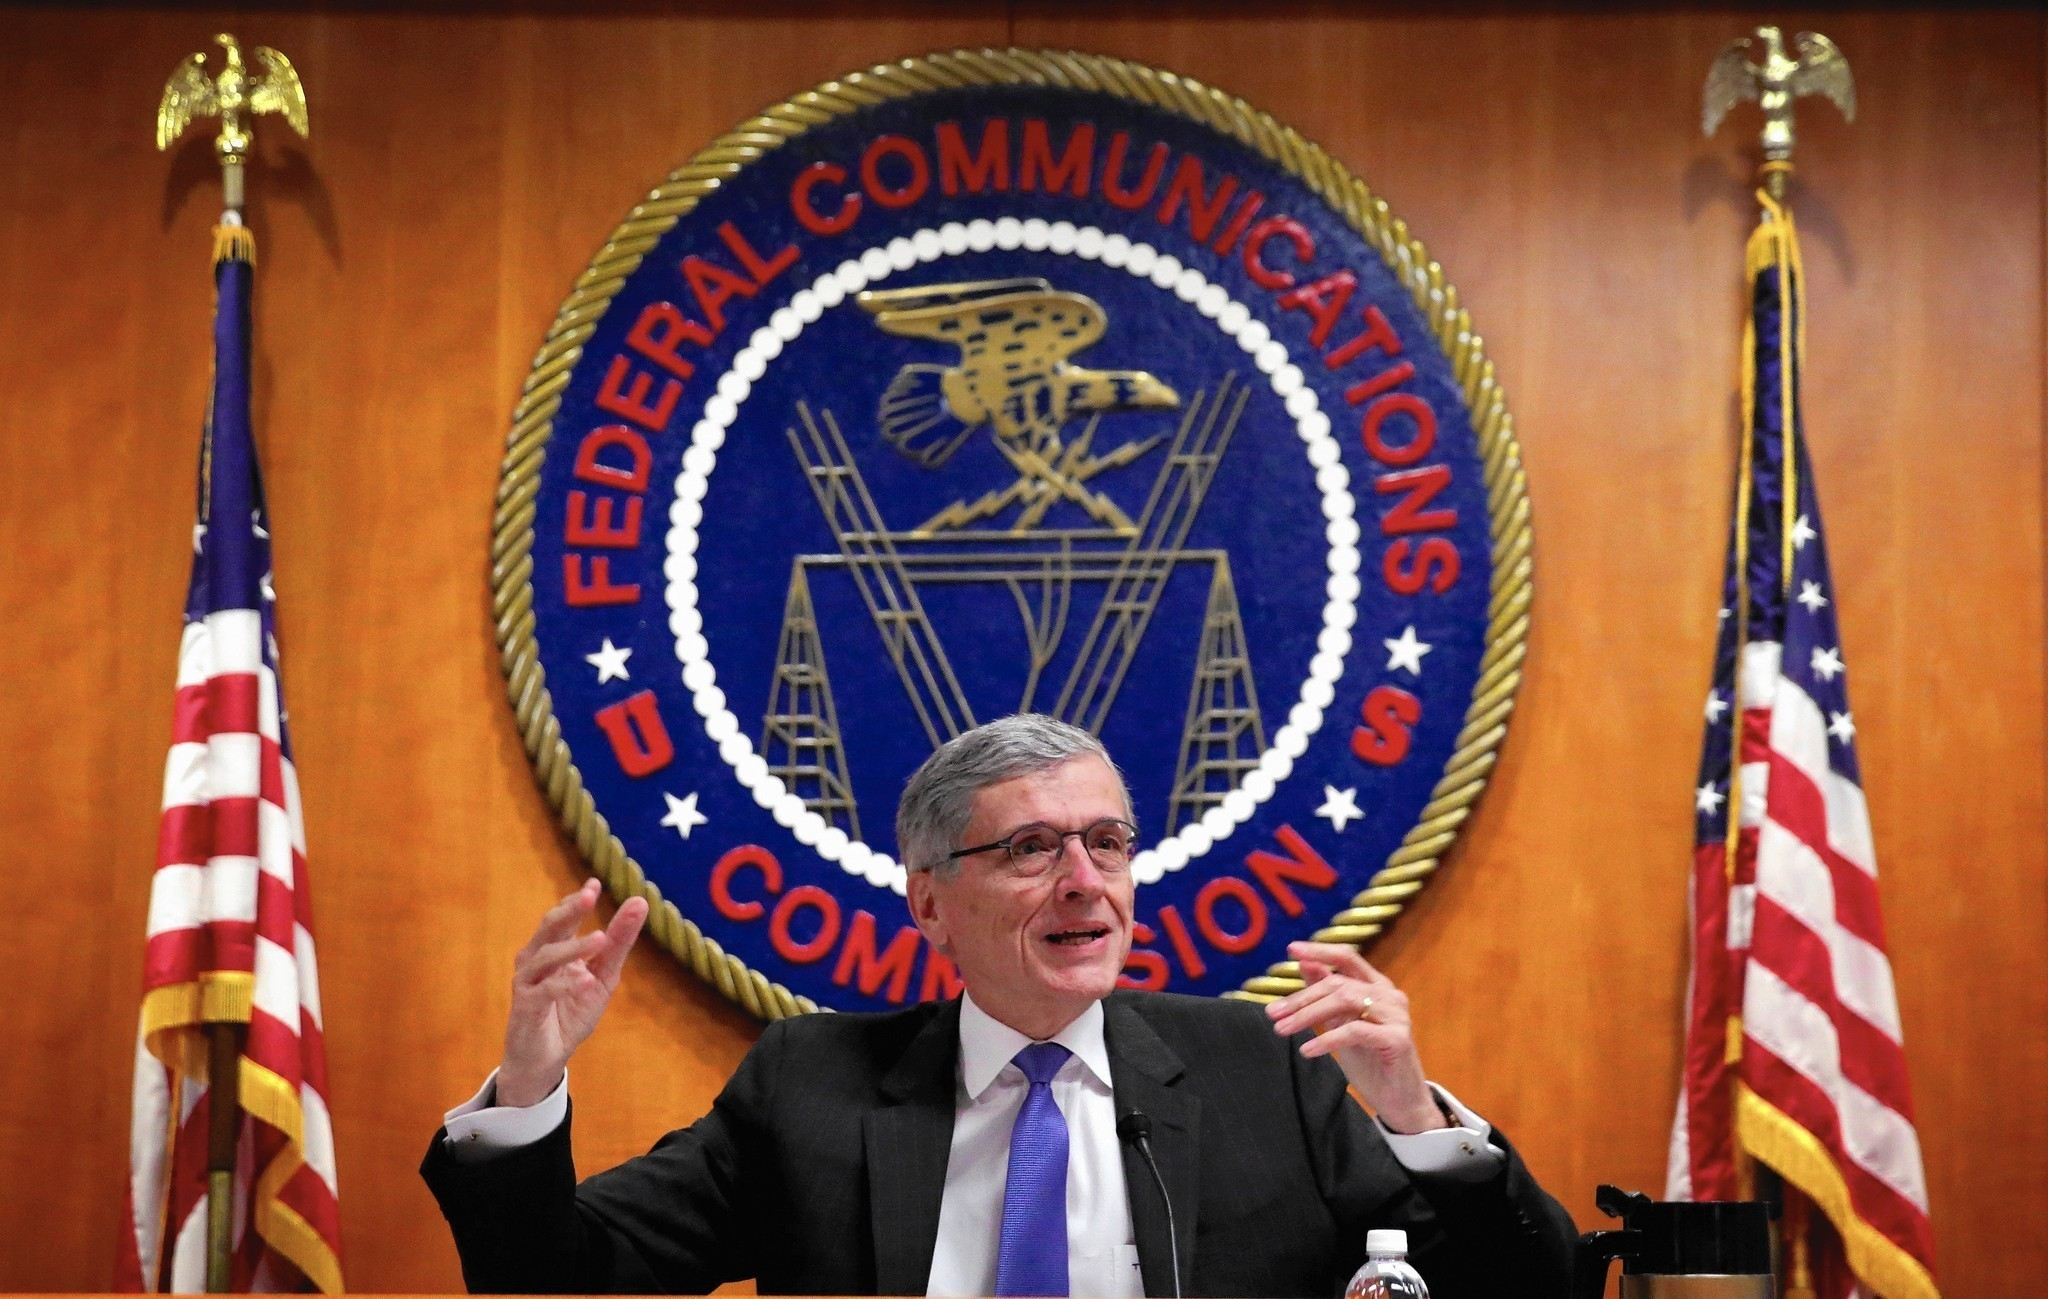 the impact of the federal communications commission ruling in the cable industry Today's vote by the federal communications commission (fcc) repealing its 2015 network neutrality rules will have an especially negative impact on online innovation.